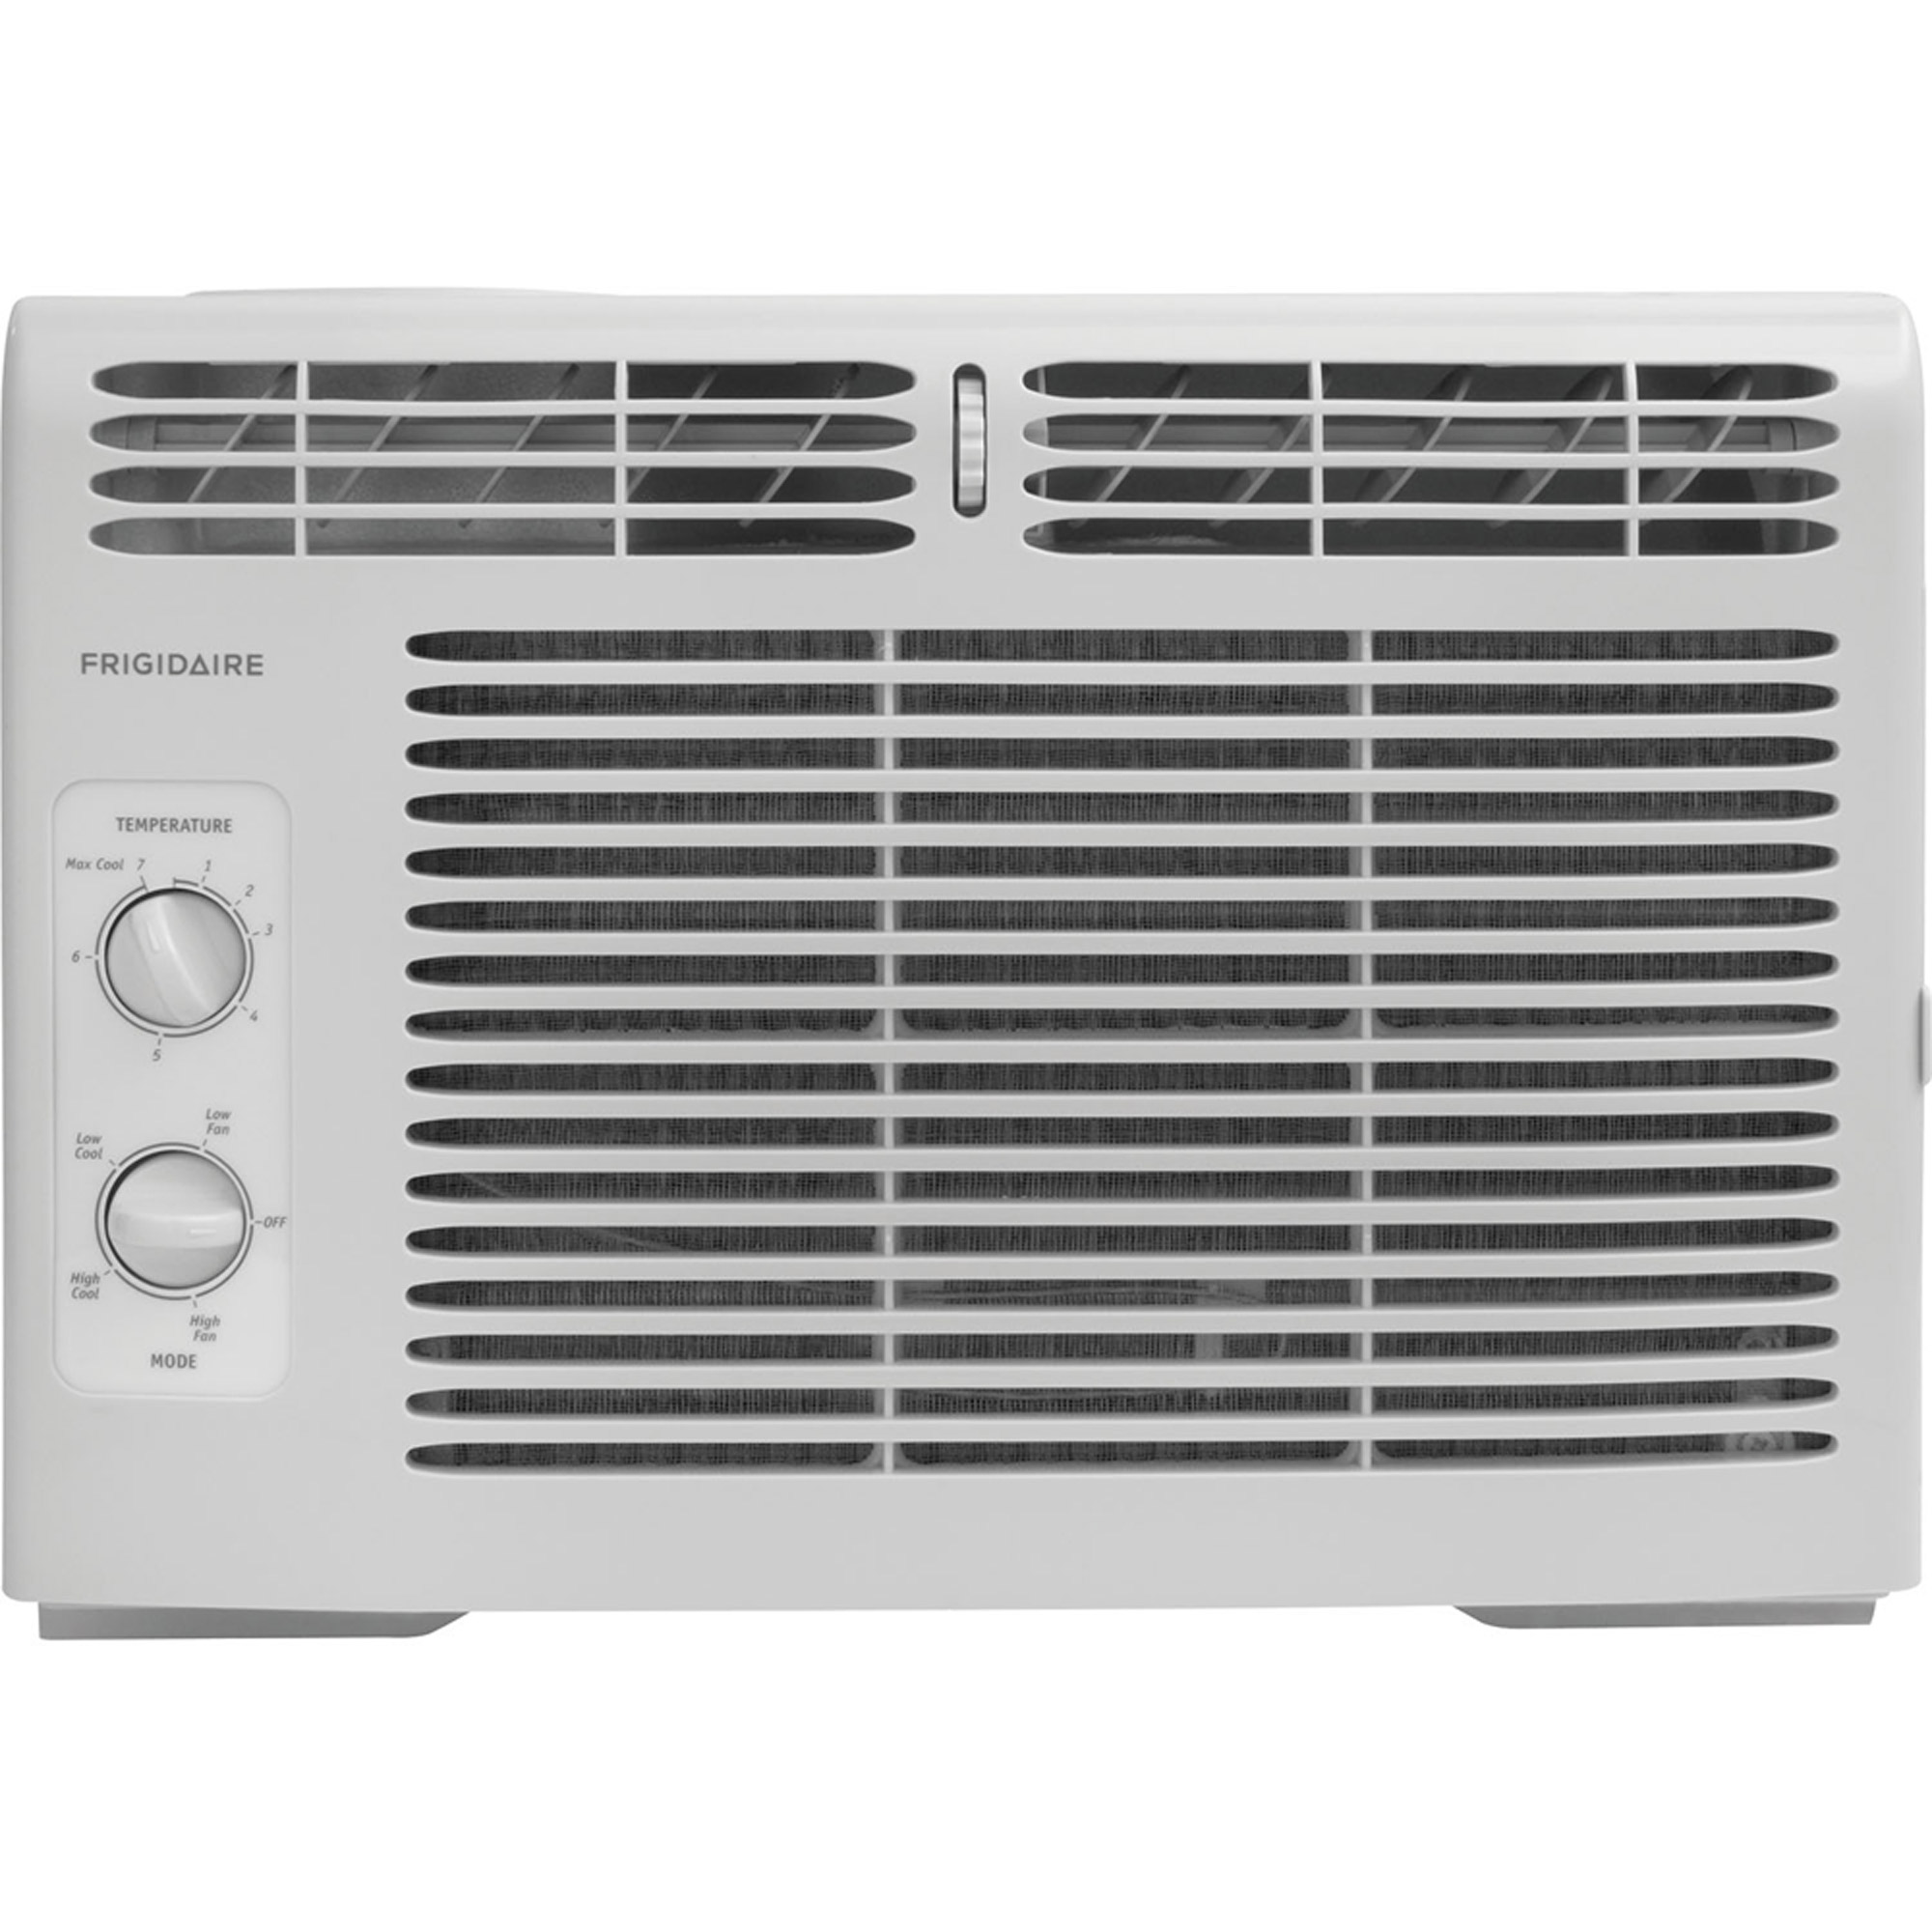 Frigidaire 5,000 BTU Window Air Conditioner, 115V, FFRA0511R1